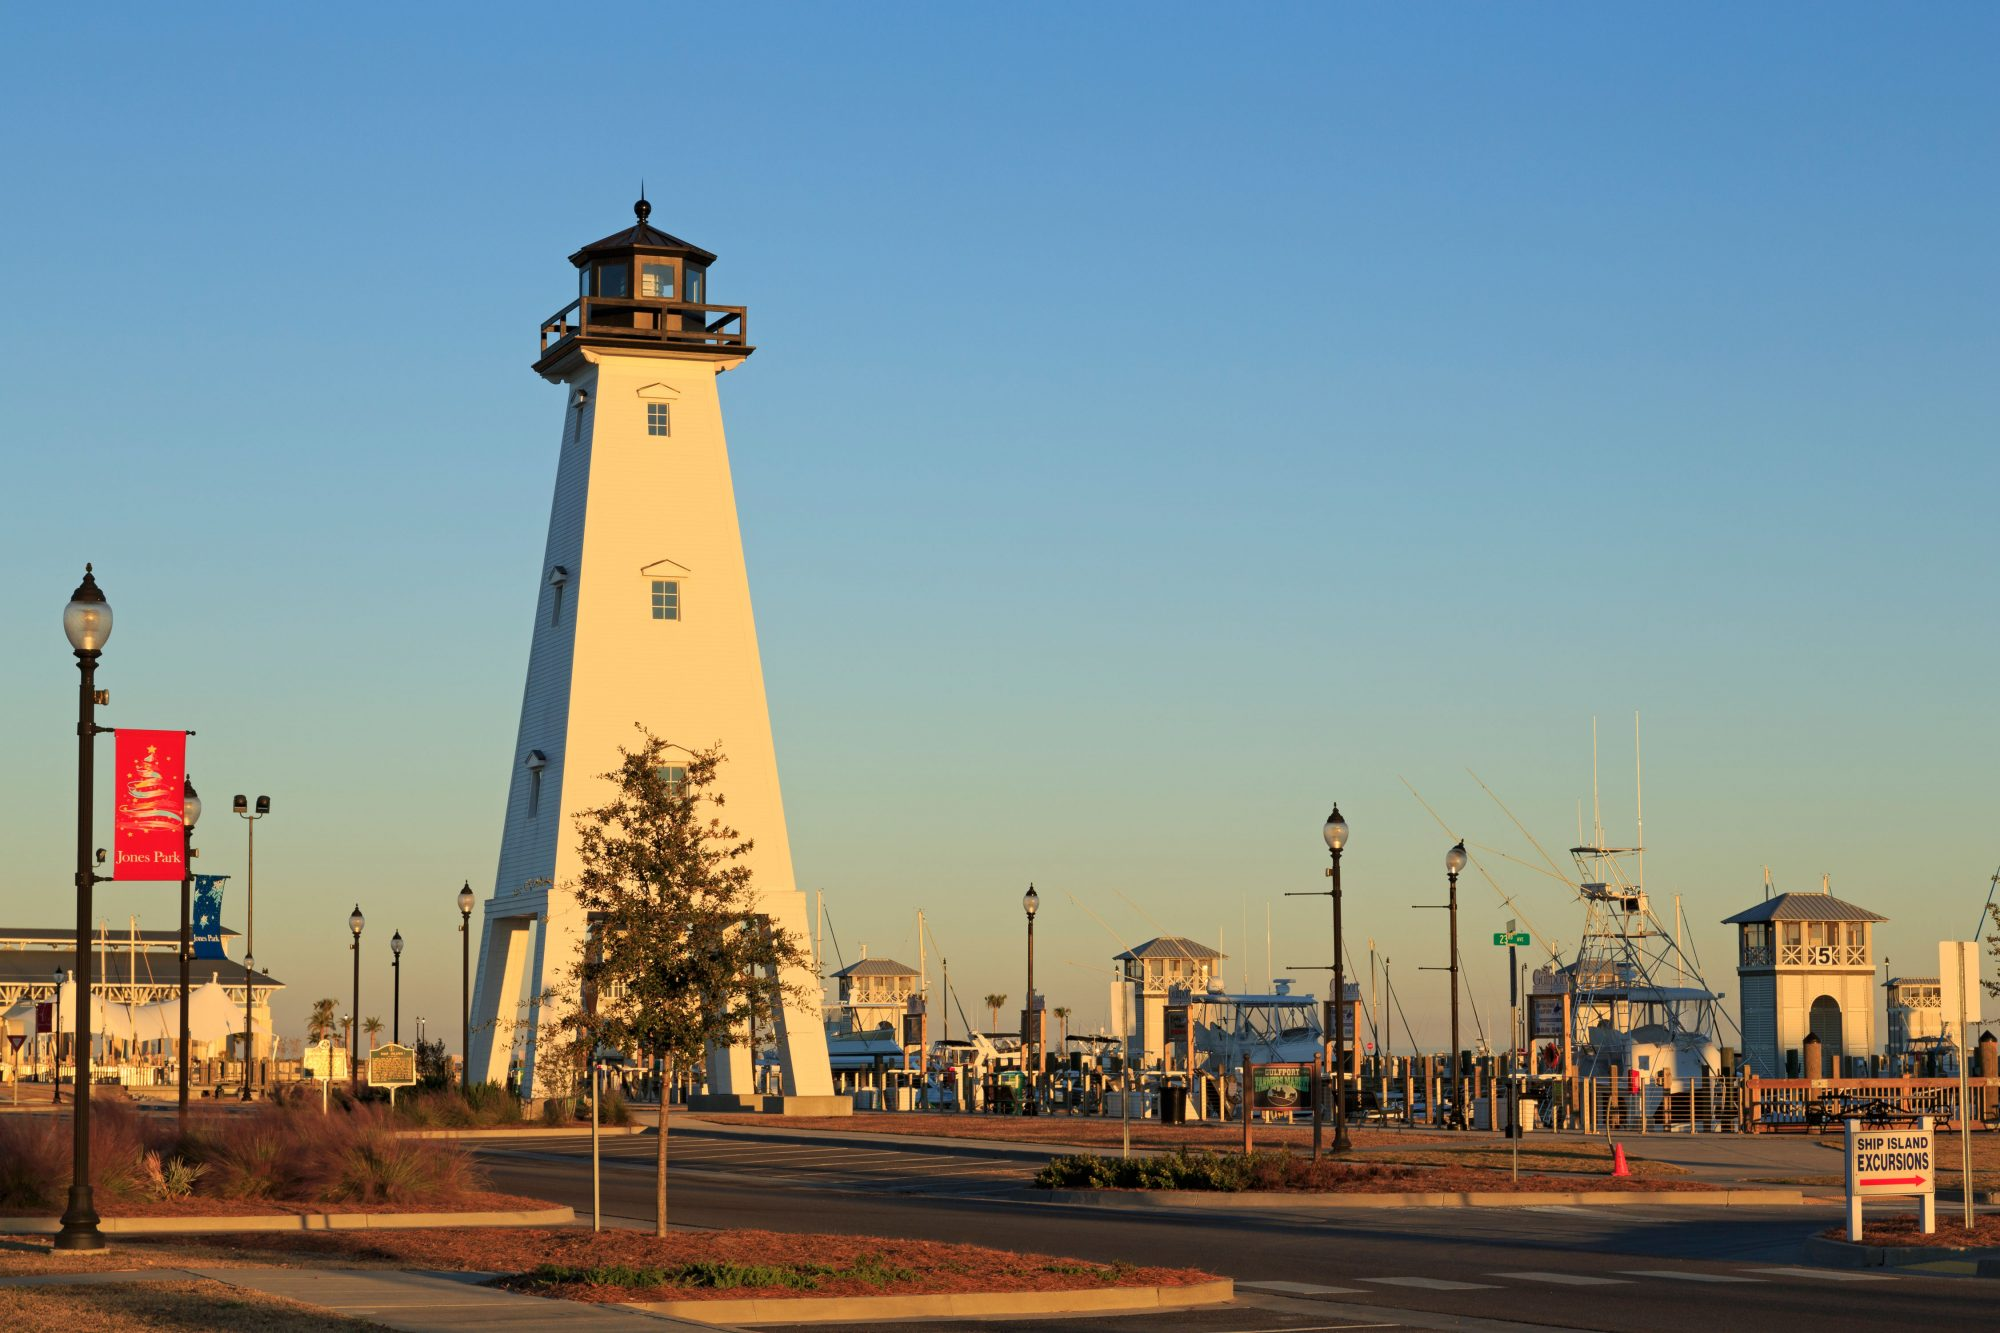 Offshore barrier islands protect the waters of Gulfport's beachfront, keeping the surf gentle and allowing swimmers of all ages and skills to frolic in the clear waters of the Gulf. Ferries from Gulfport provide access to said barrier islands for...